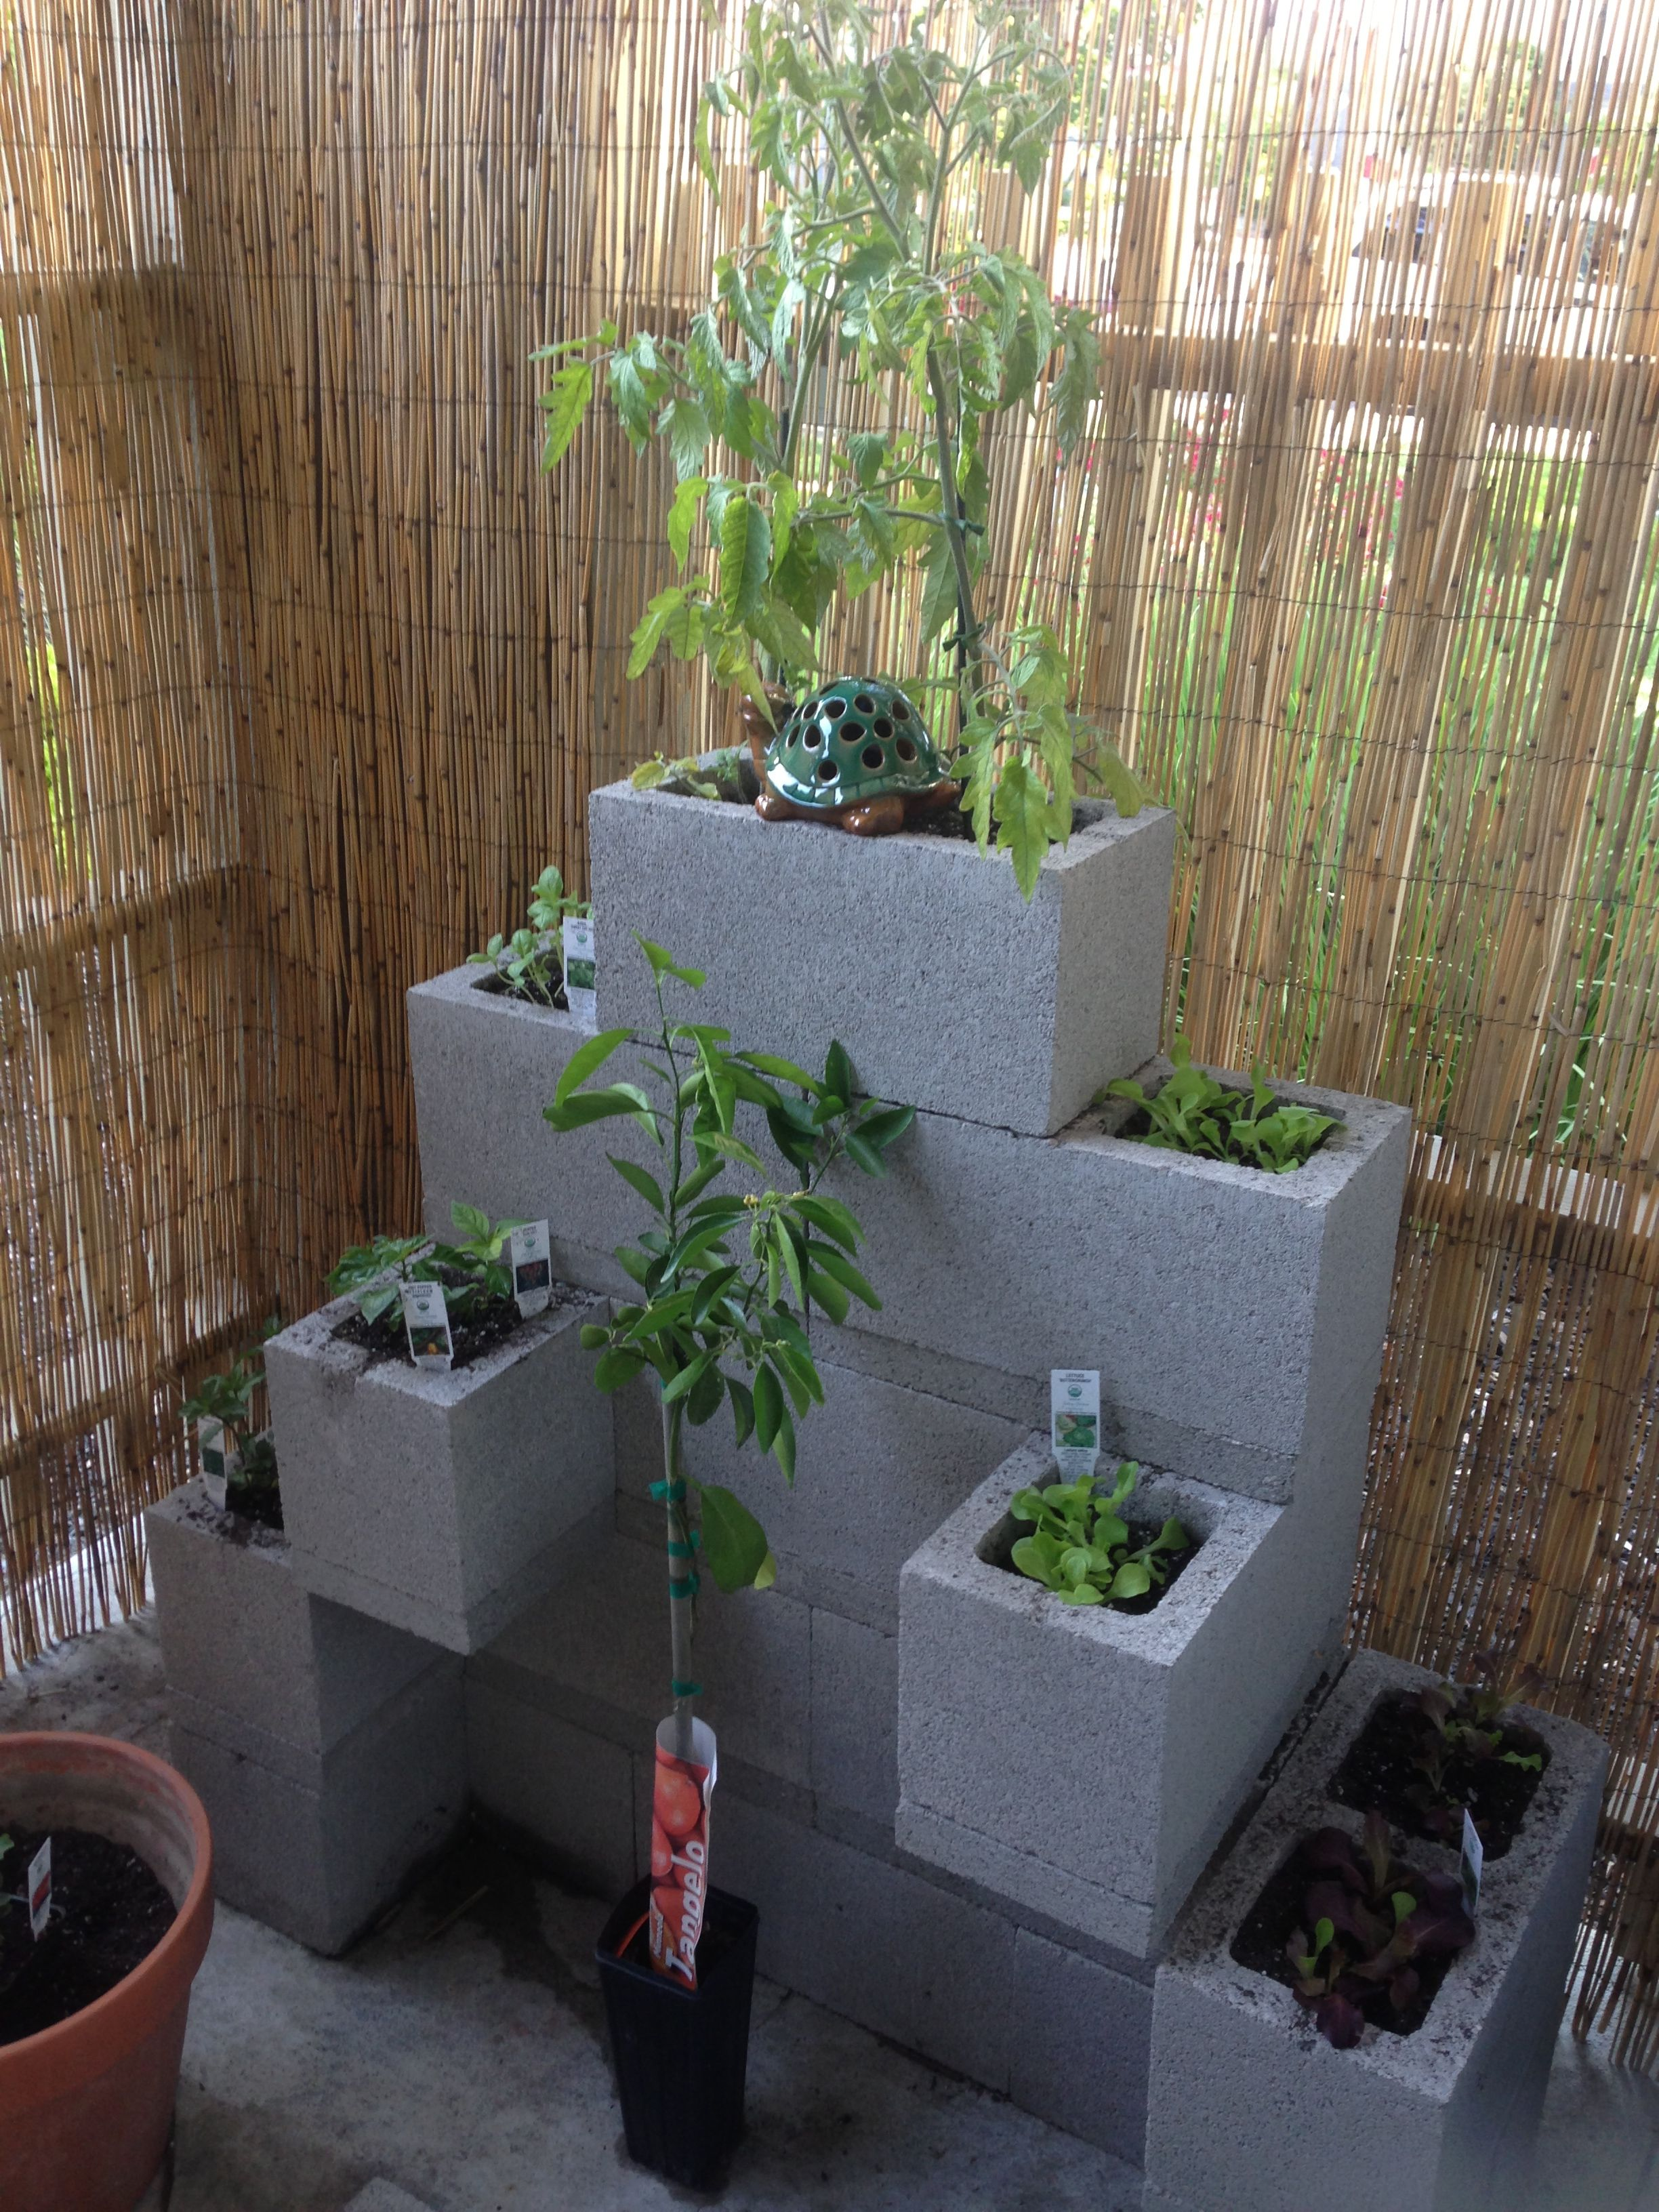 urban garden, cinder block garden, small space gardening ideas